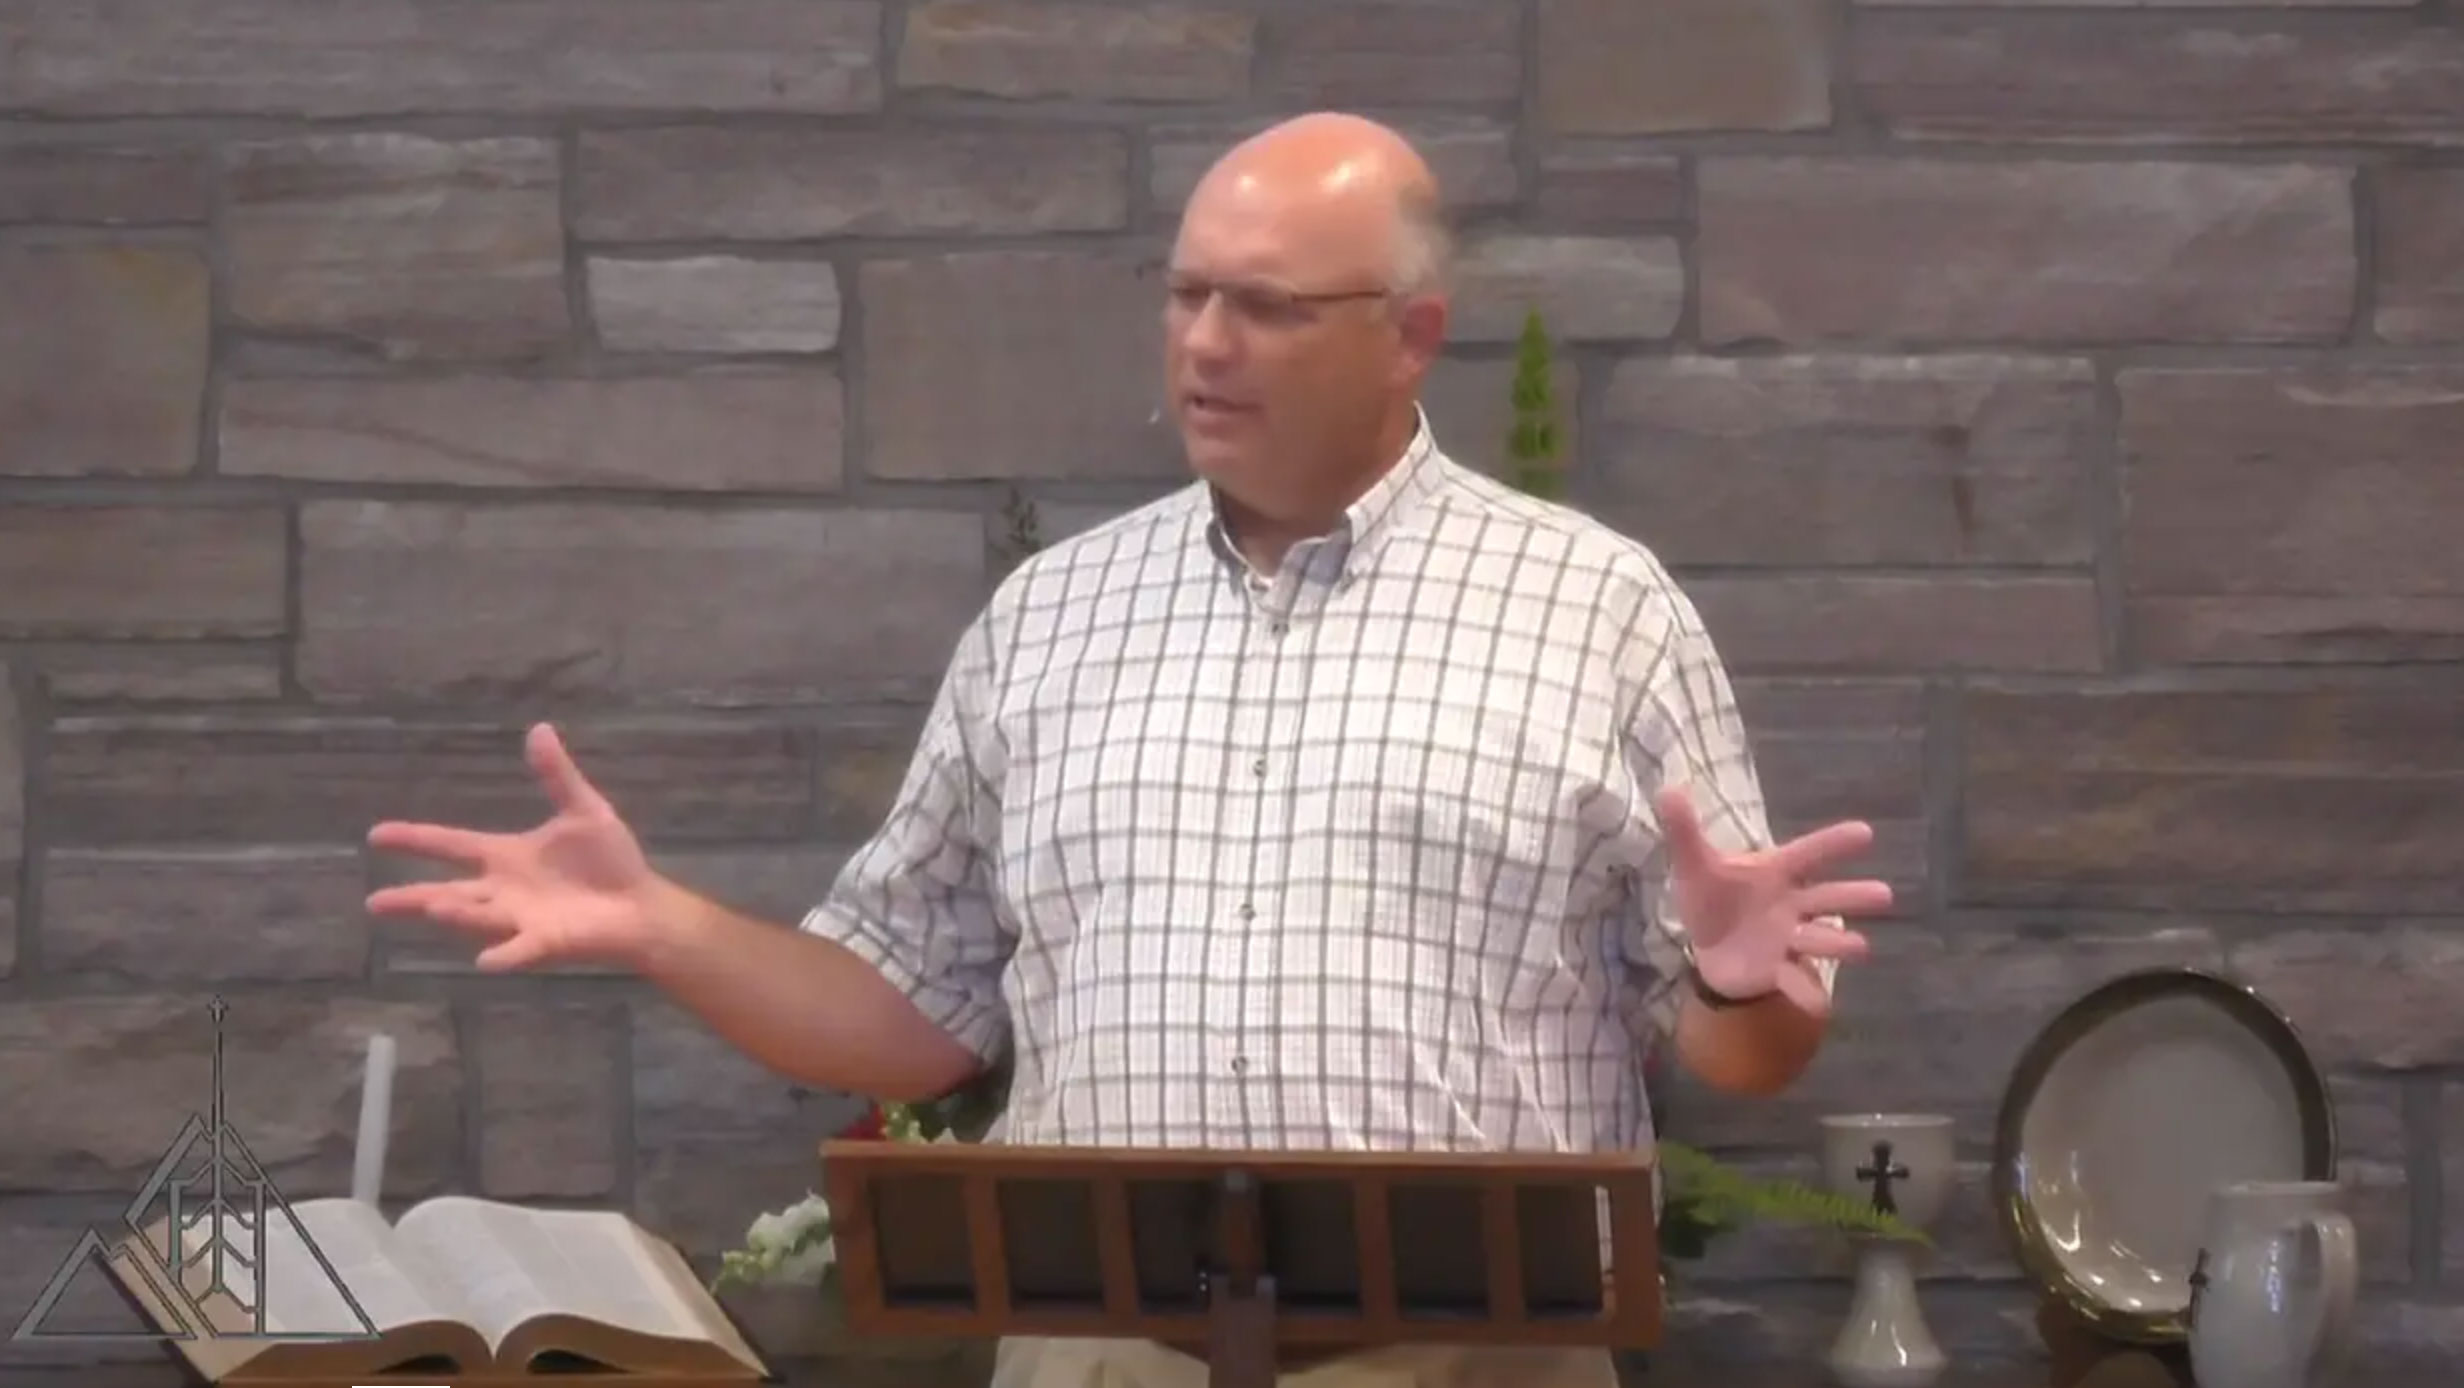 Overcoming Faithless Self-Reliance - Guest Pastor Kevin Stieva June 30 2019James 5: 13-18